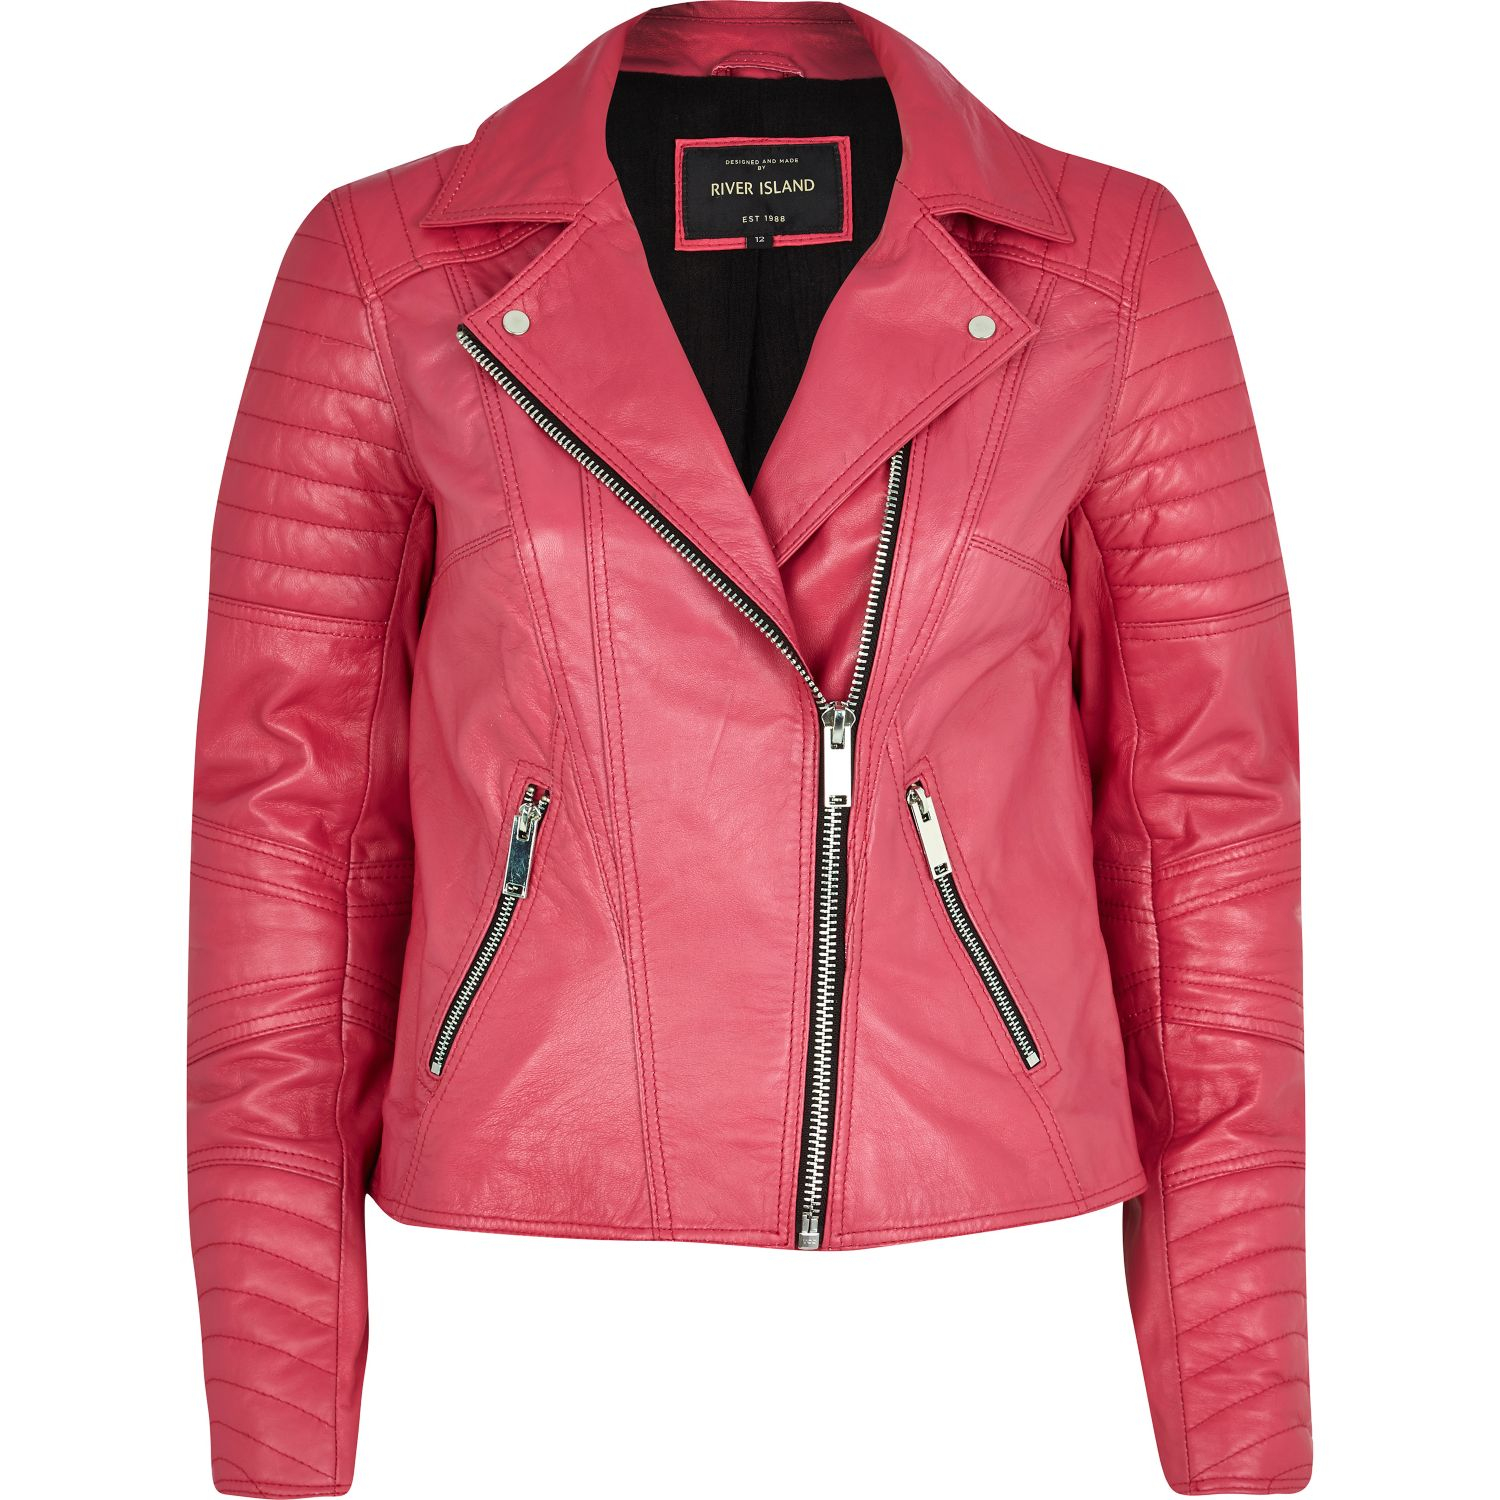 River Island Leather Bomber Jacket